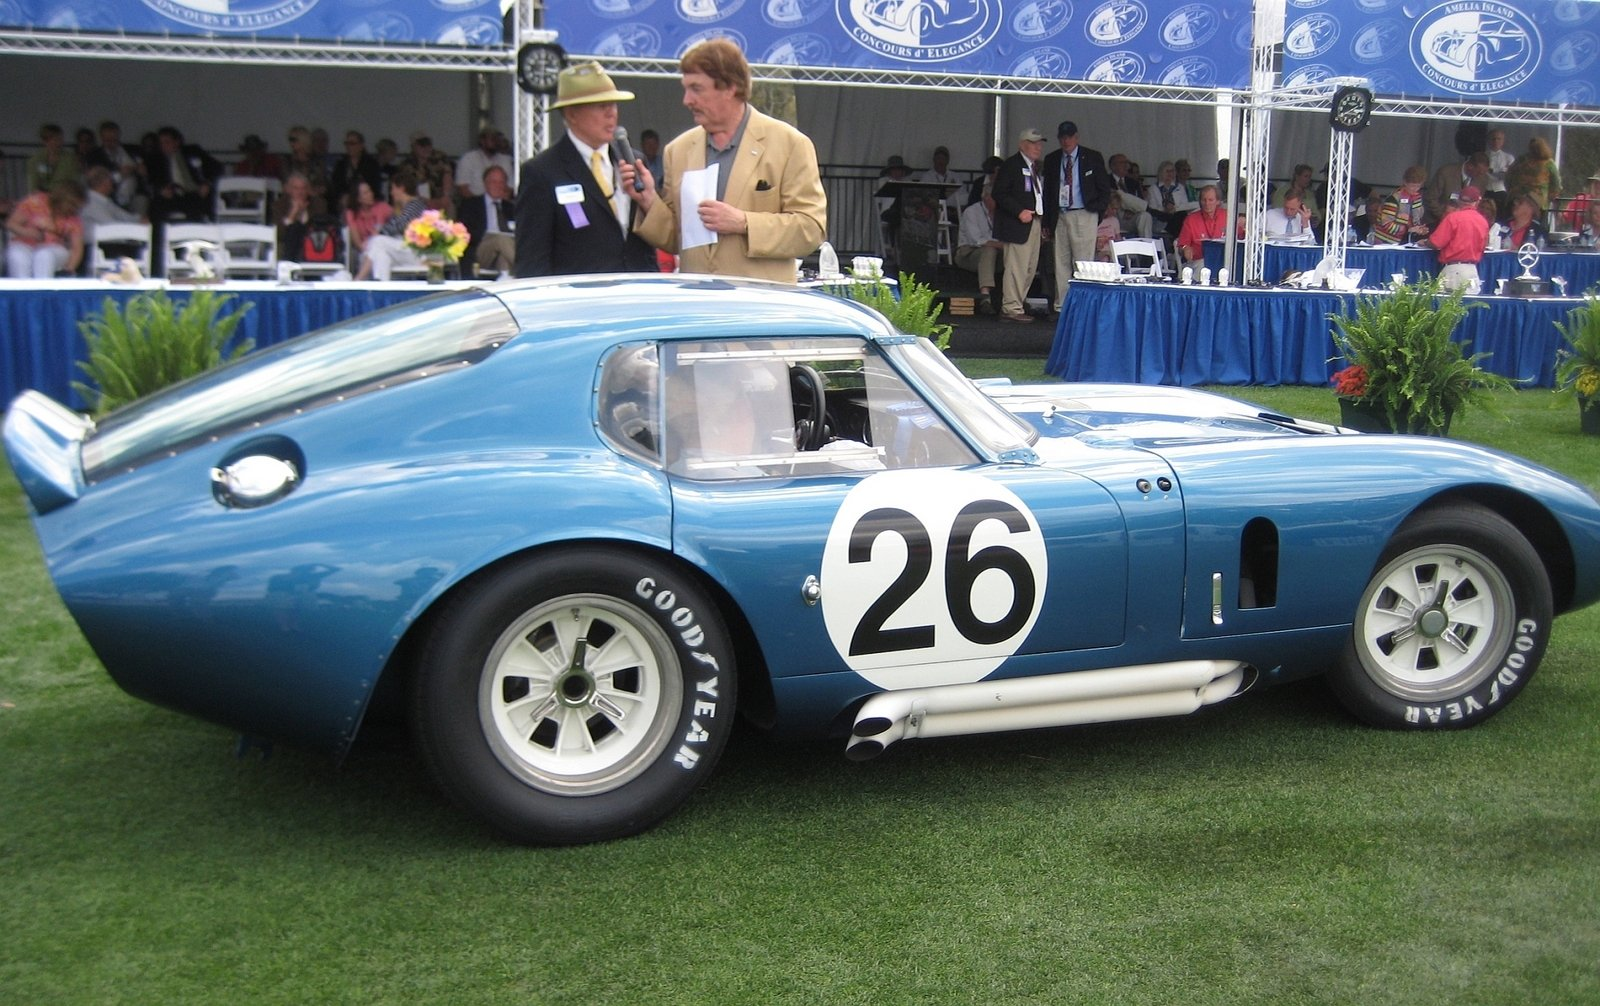 Concours D Elegance >> Shelby Daytona Coupe Auction Car Wins At Amelia Island ...